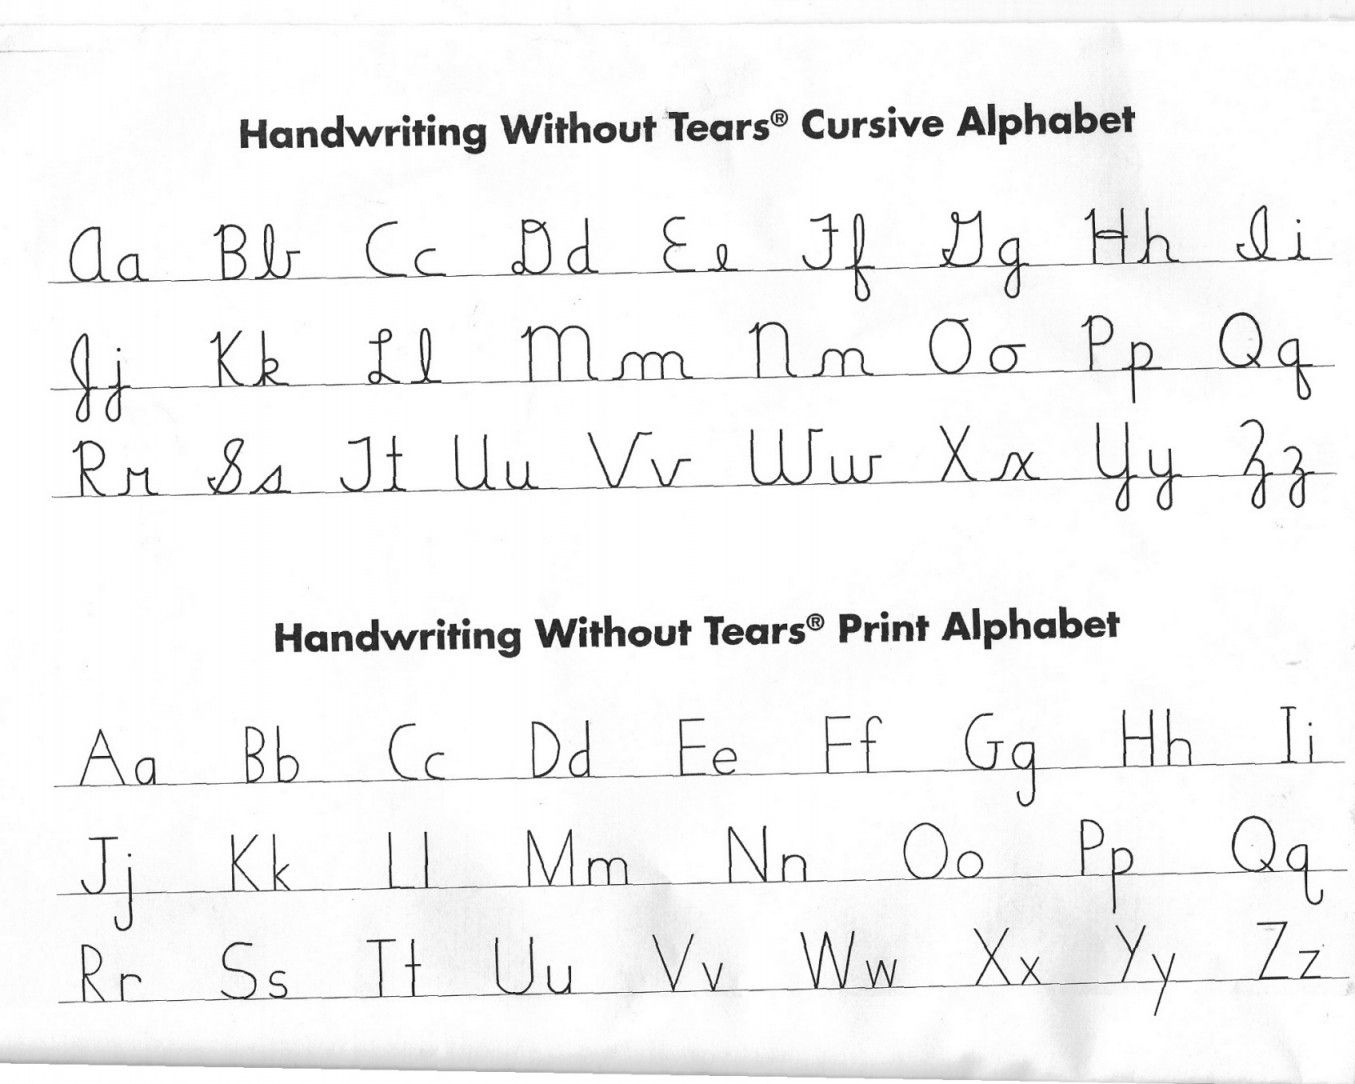 Handwriting Without Tears Worksheets | Lobo Black - Handwriting Without Tears Worksheets Free Printable